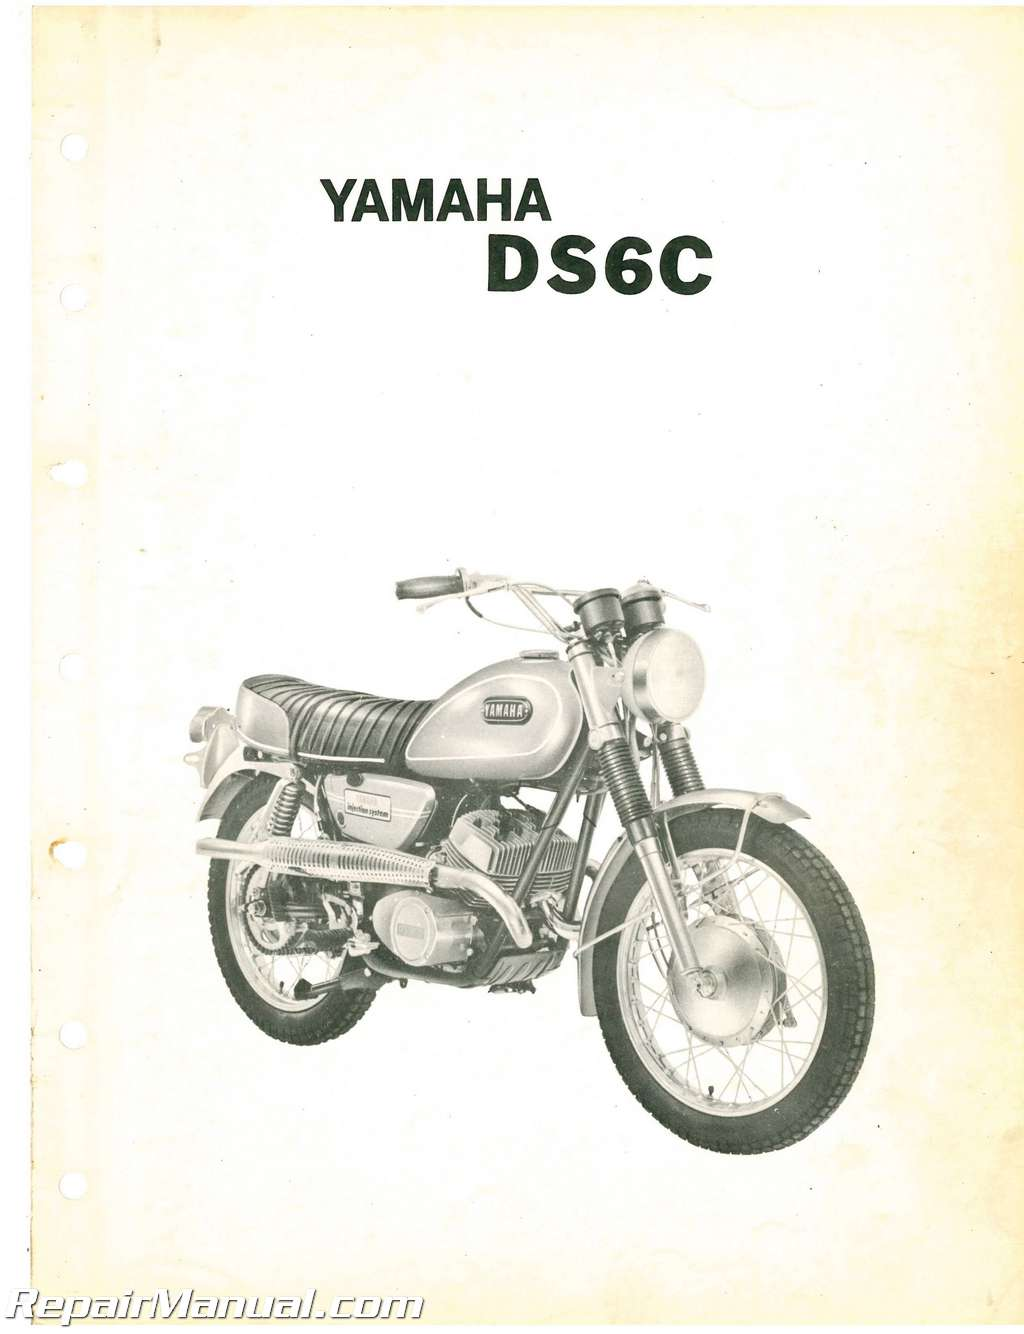 1969-Yamaha-DS6C-250cc-Motorcycle-Parts-List-Manual_003.